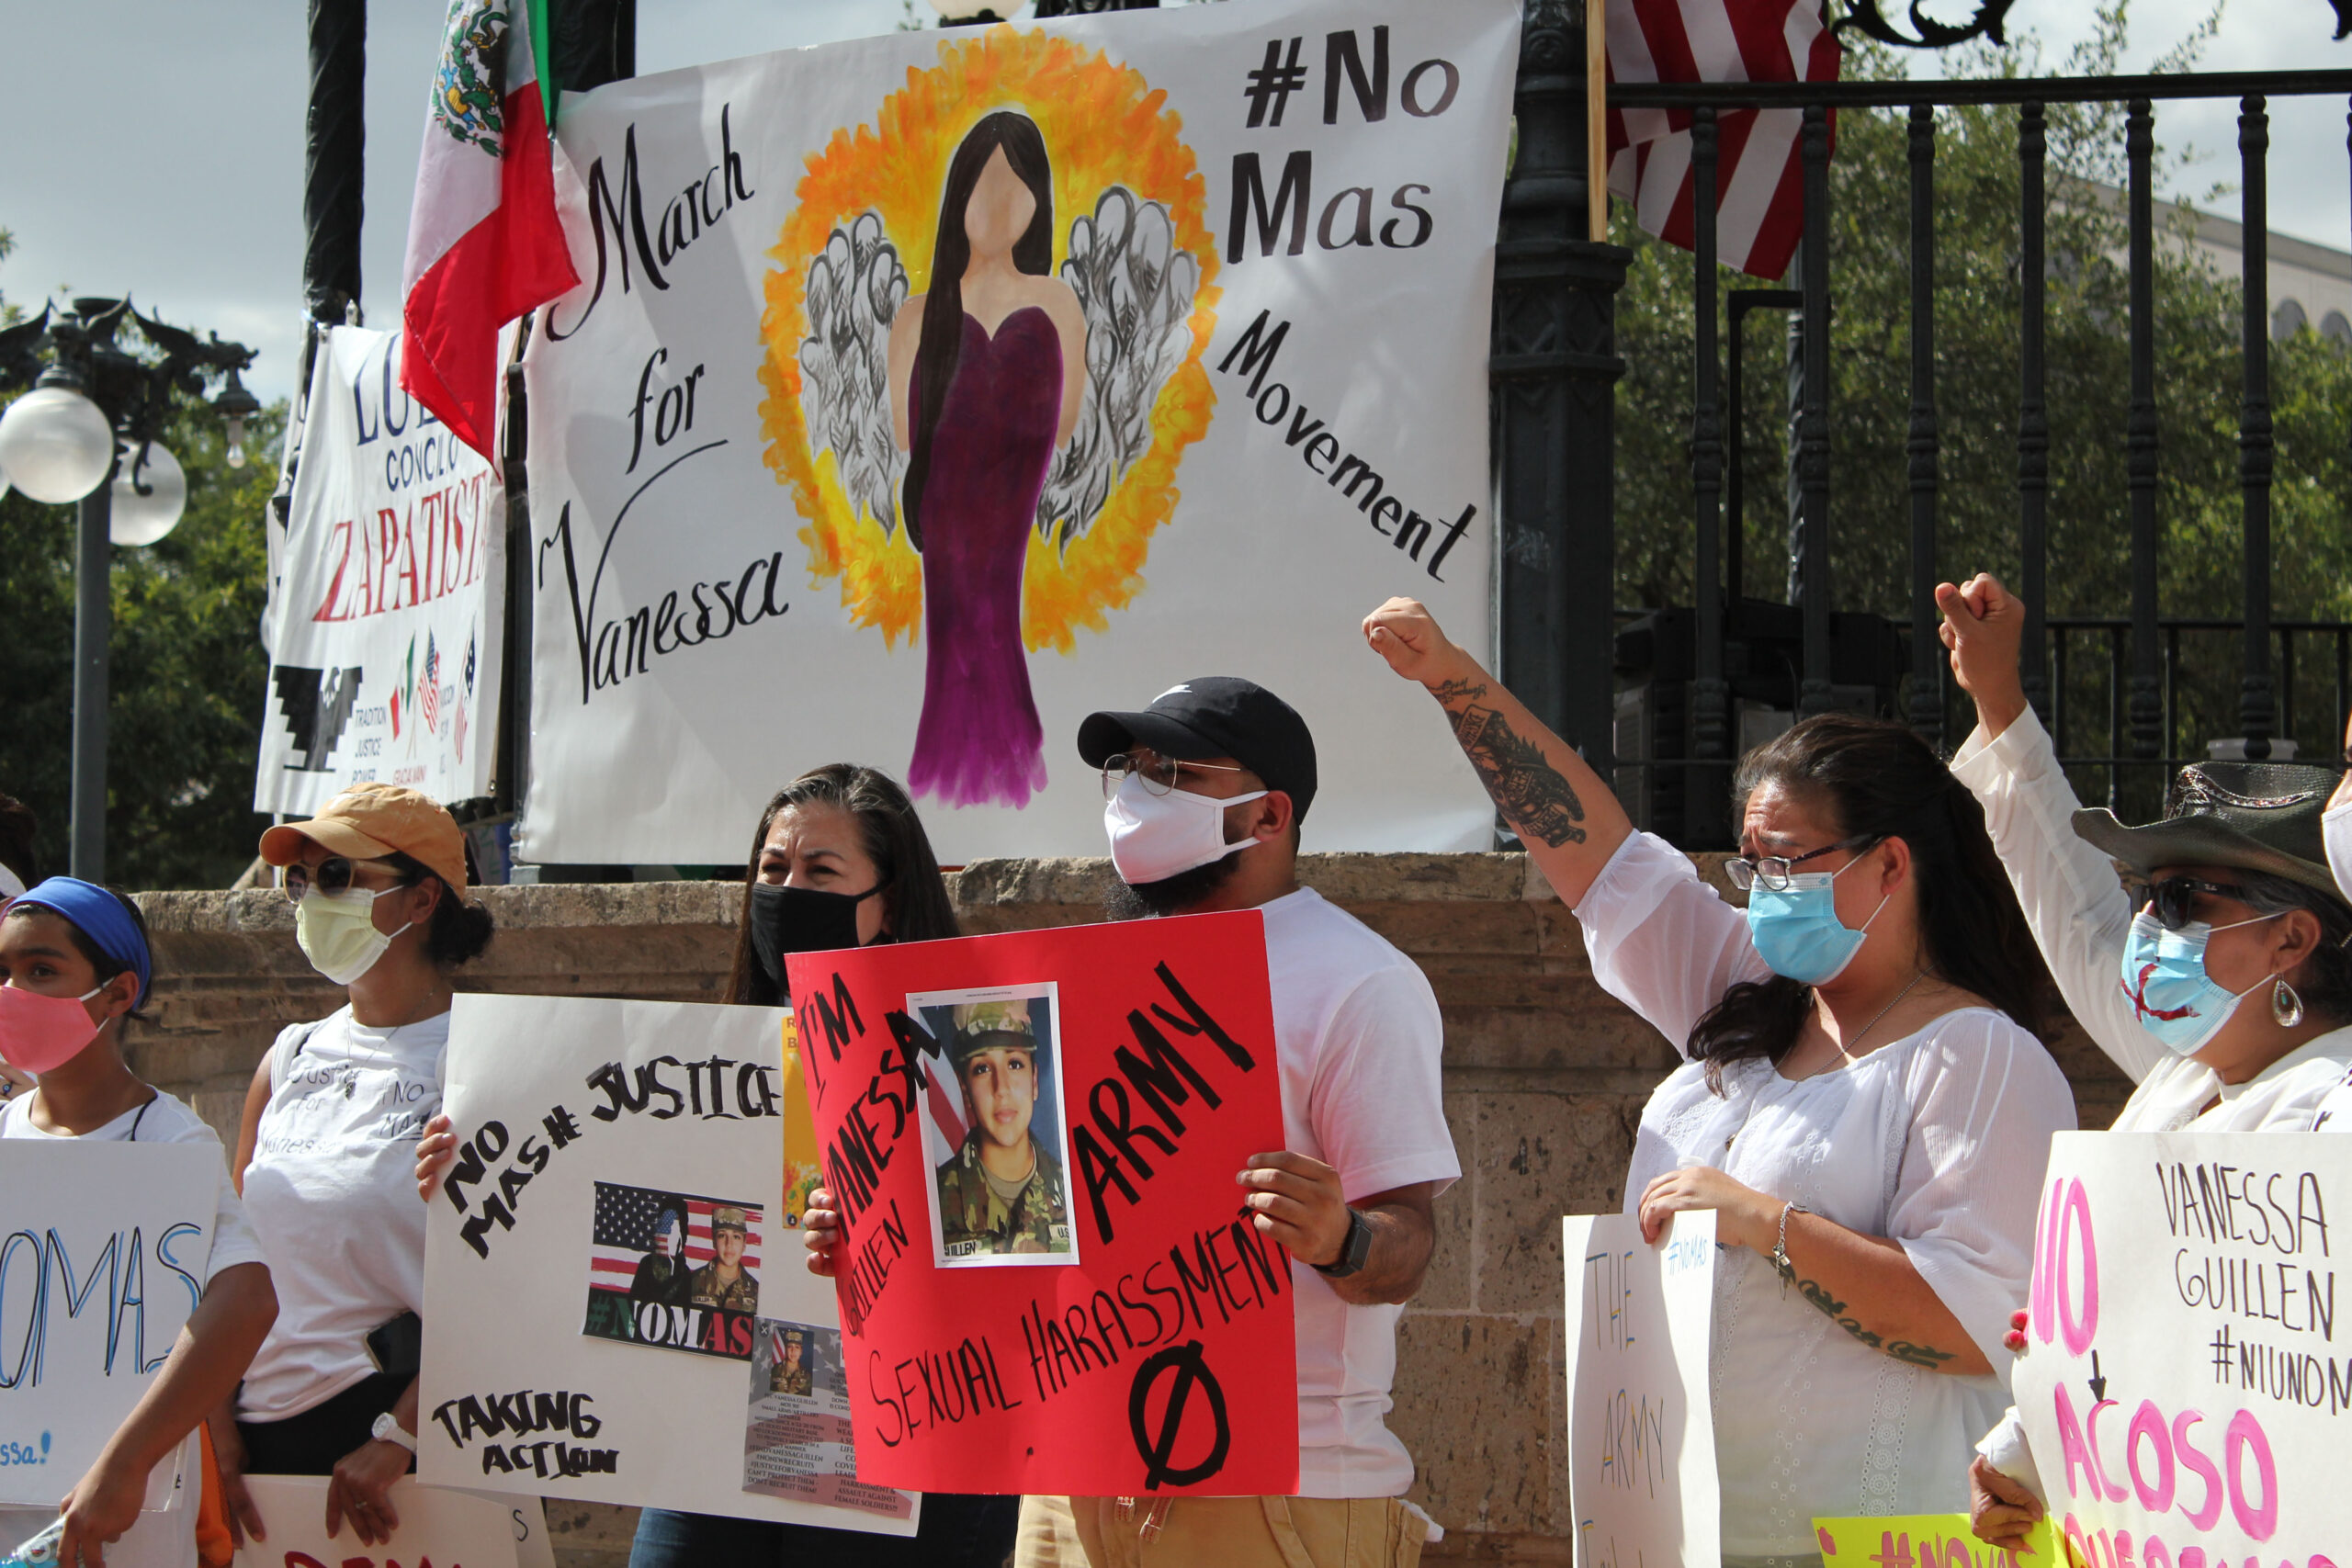 Demonstrators gather in San Antonio in July, shortly after Vanessa Guillen's body was found near Fort Hood.